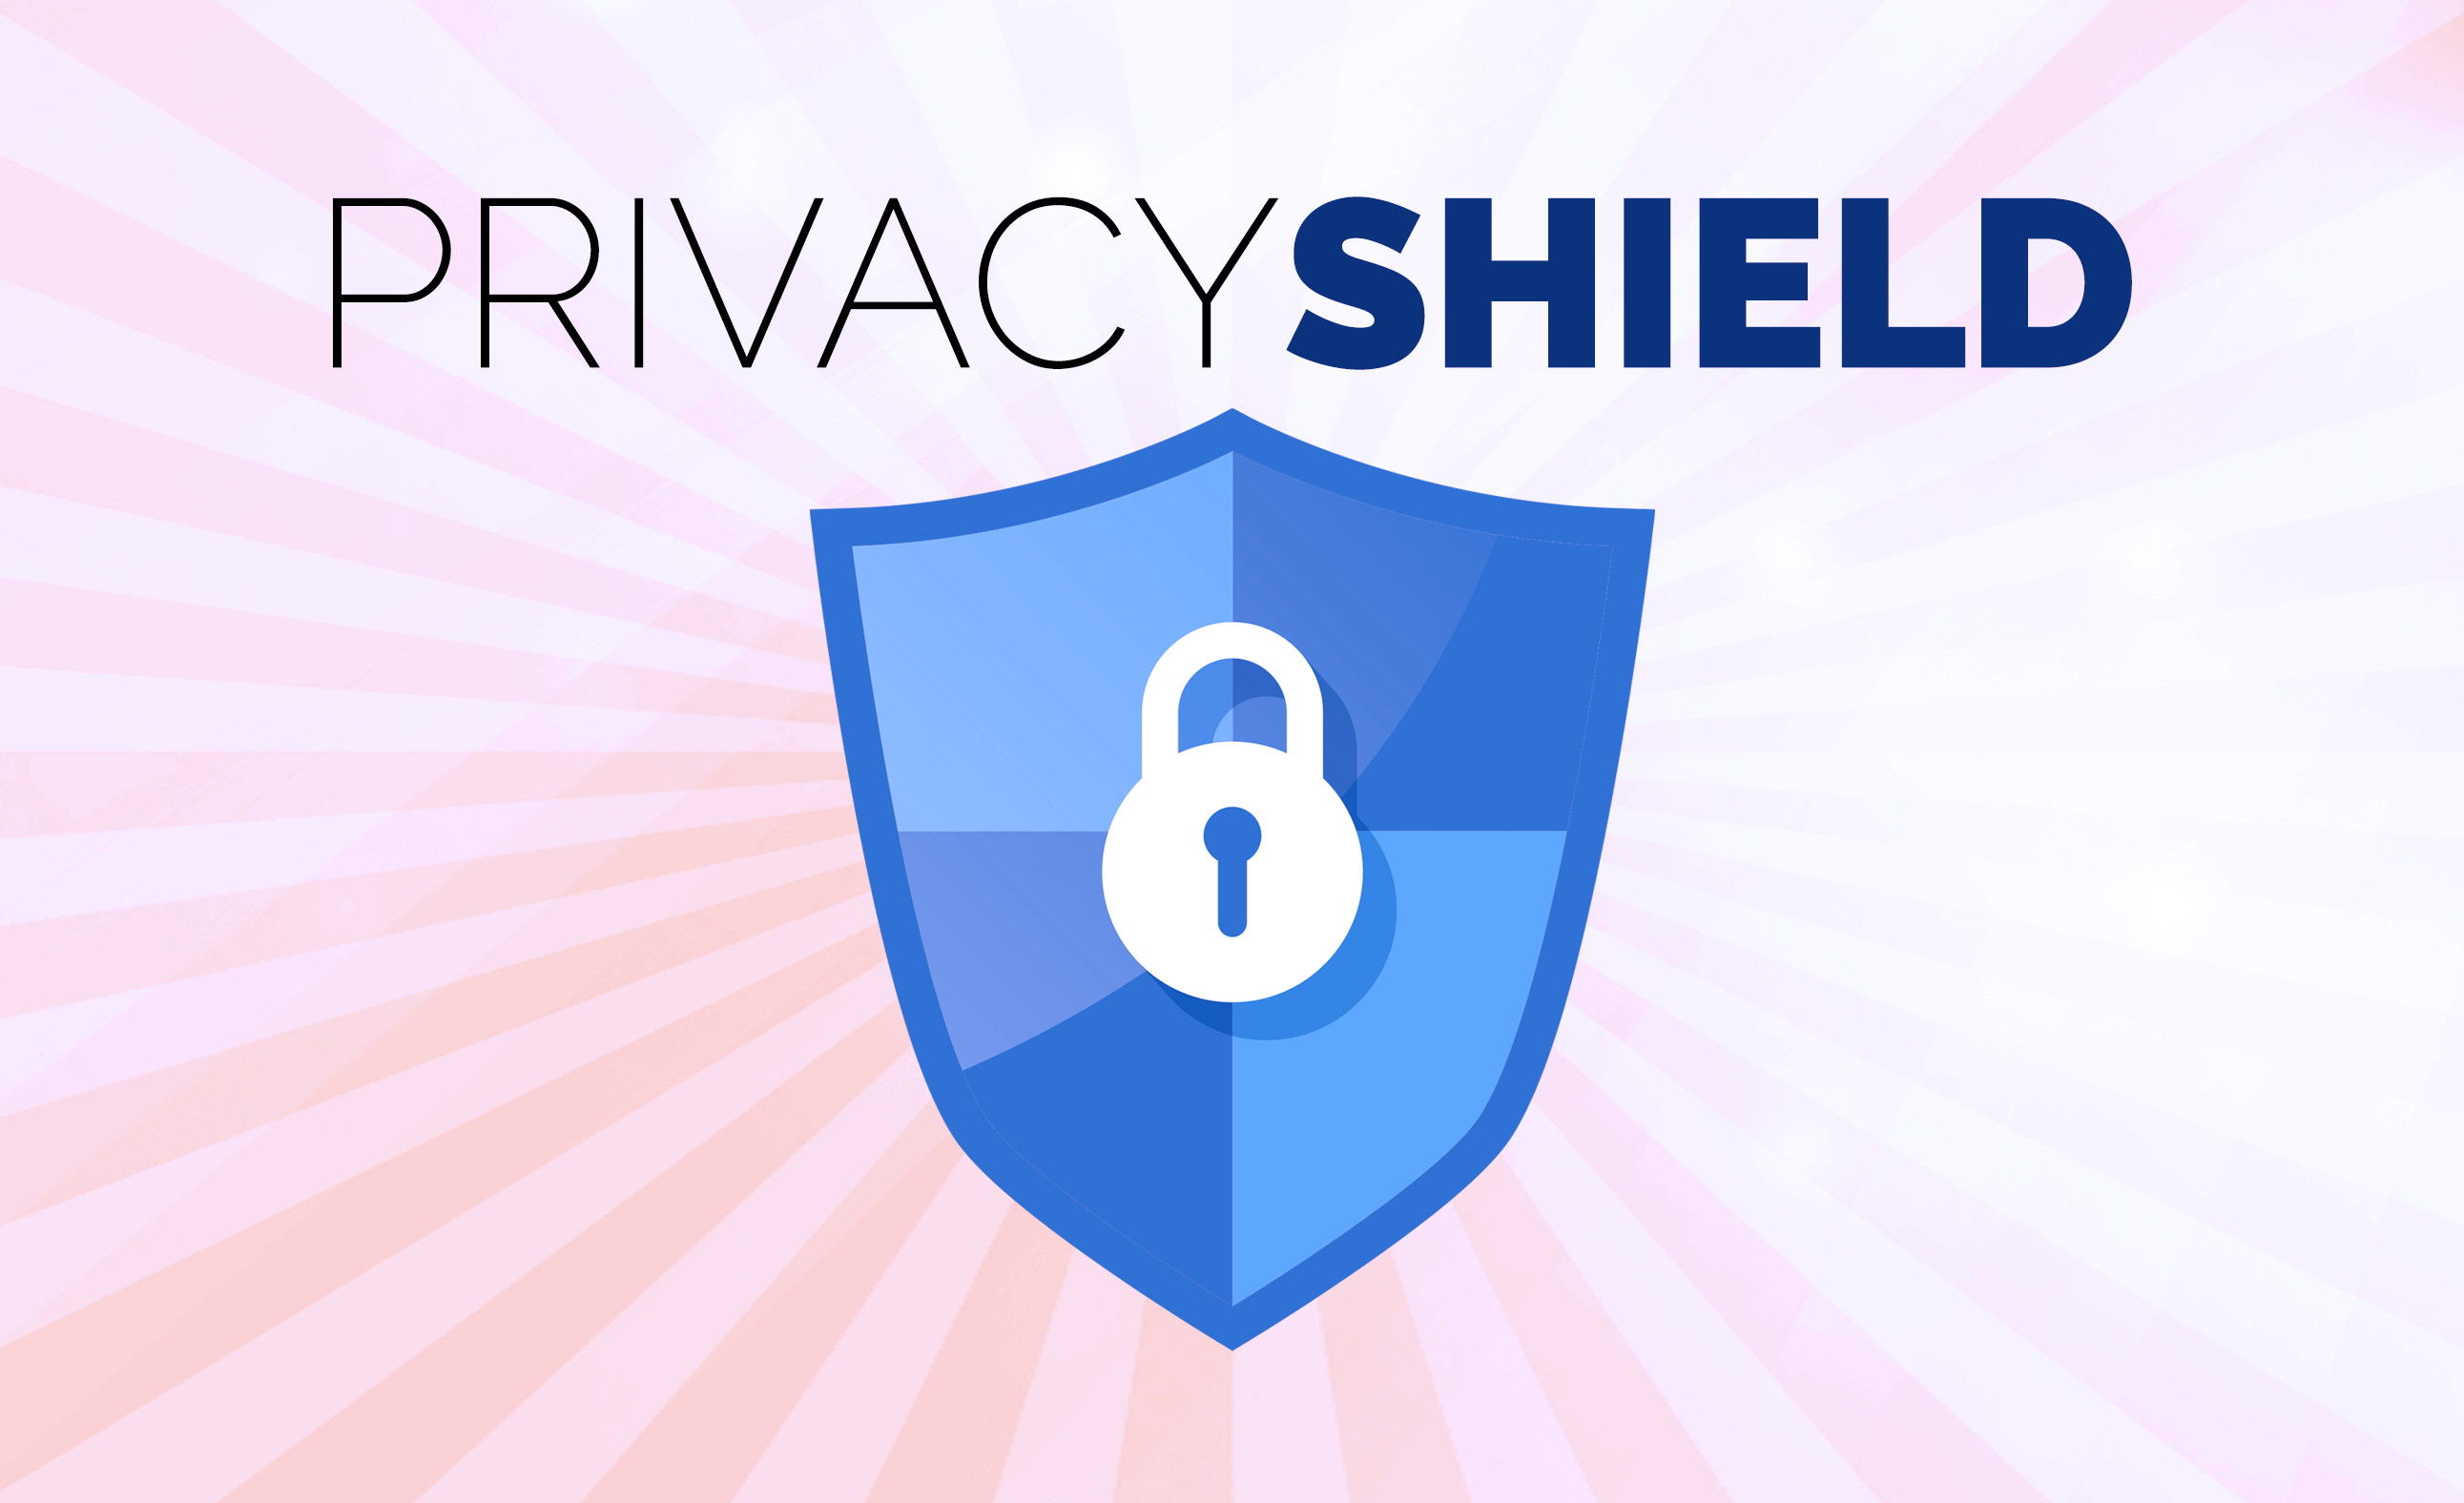 Privacy Shield